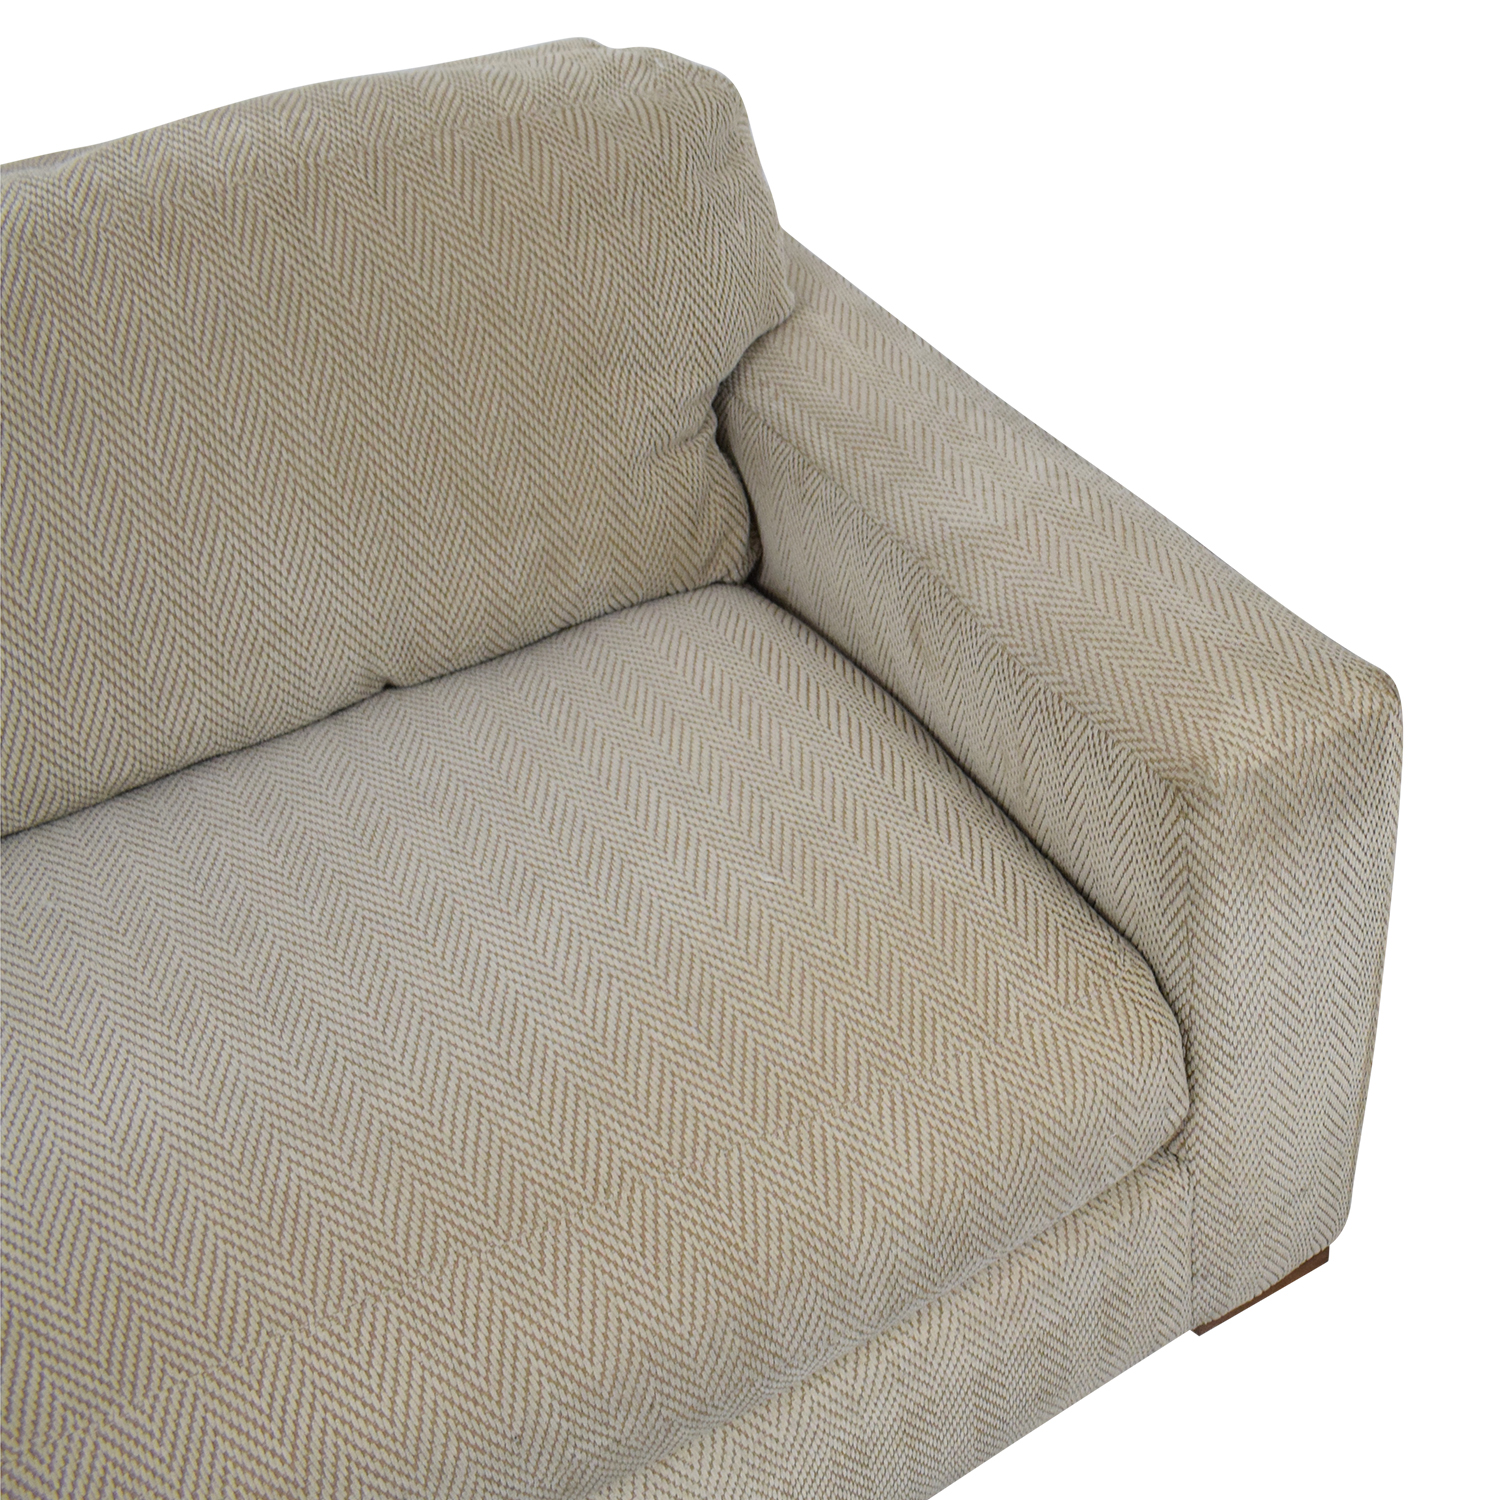 Rowe Furniture Dakota Two Cushion Sofa Rowe Furniture